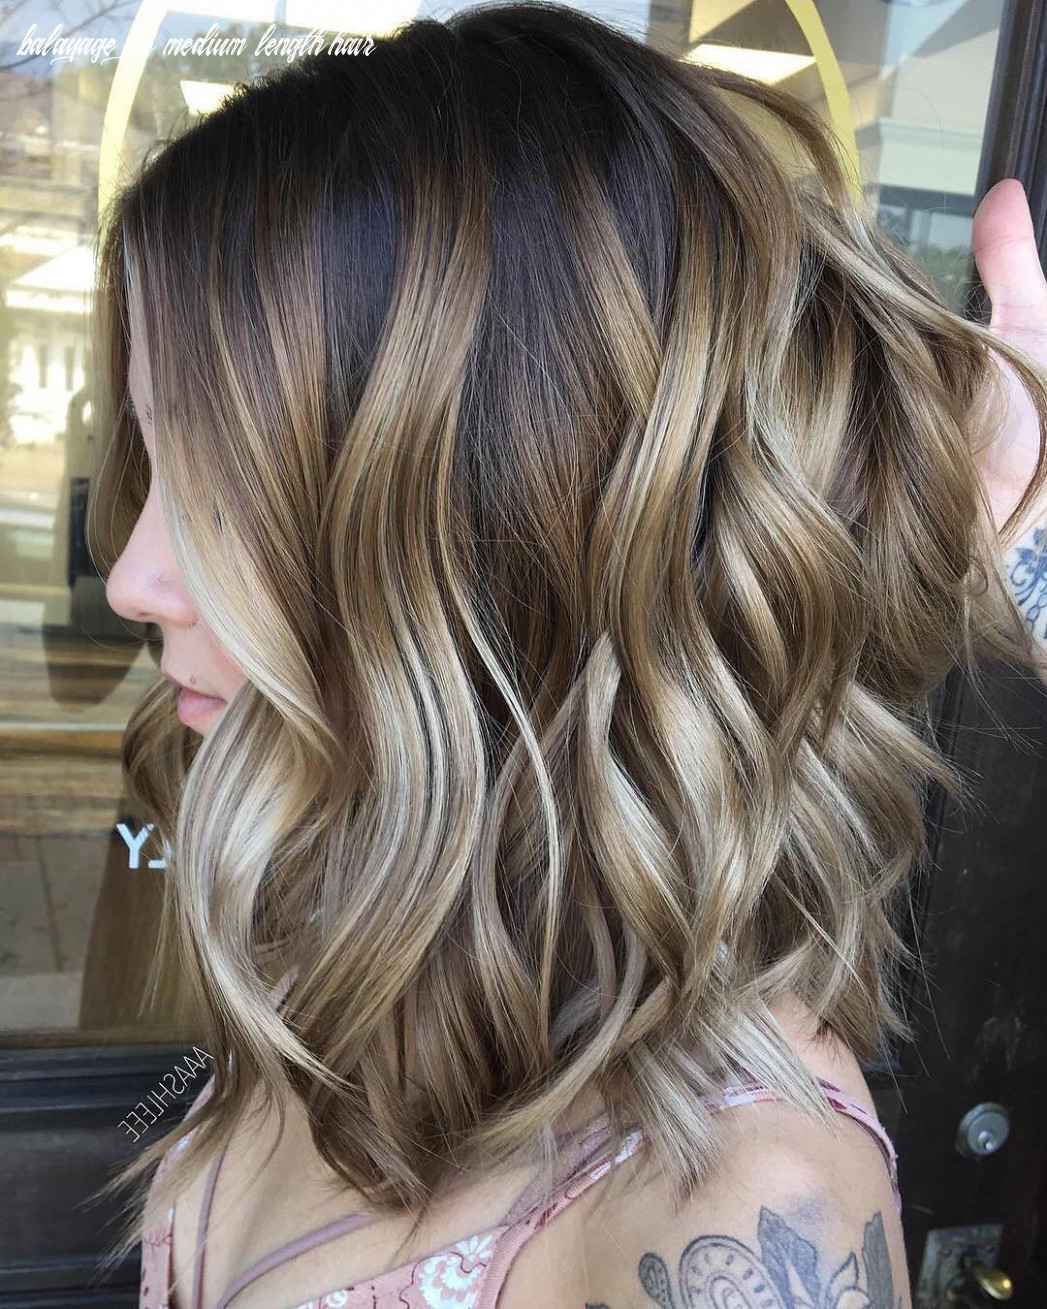 9 ombre balayage hairstyles for medium length hair, hair color 9 balayage for medium length hair